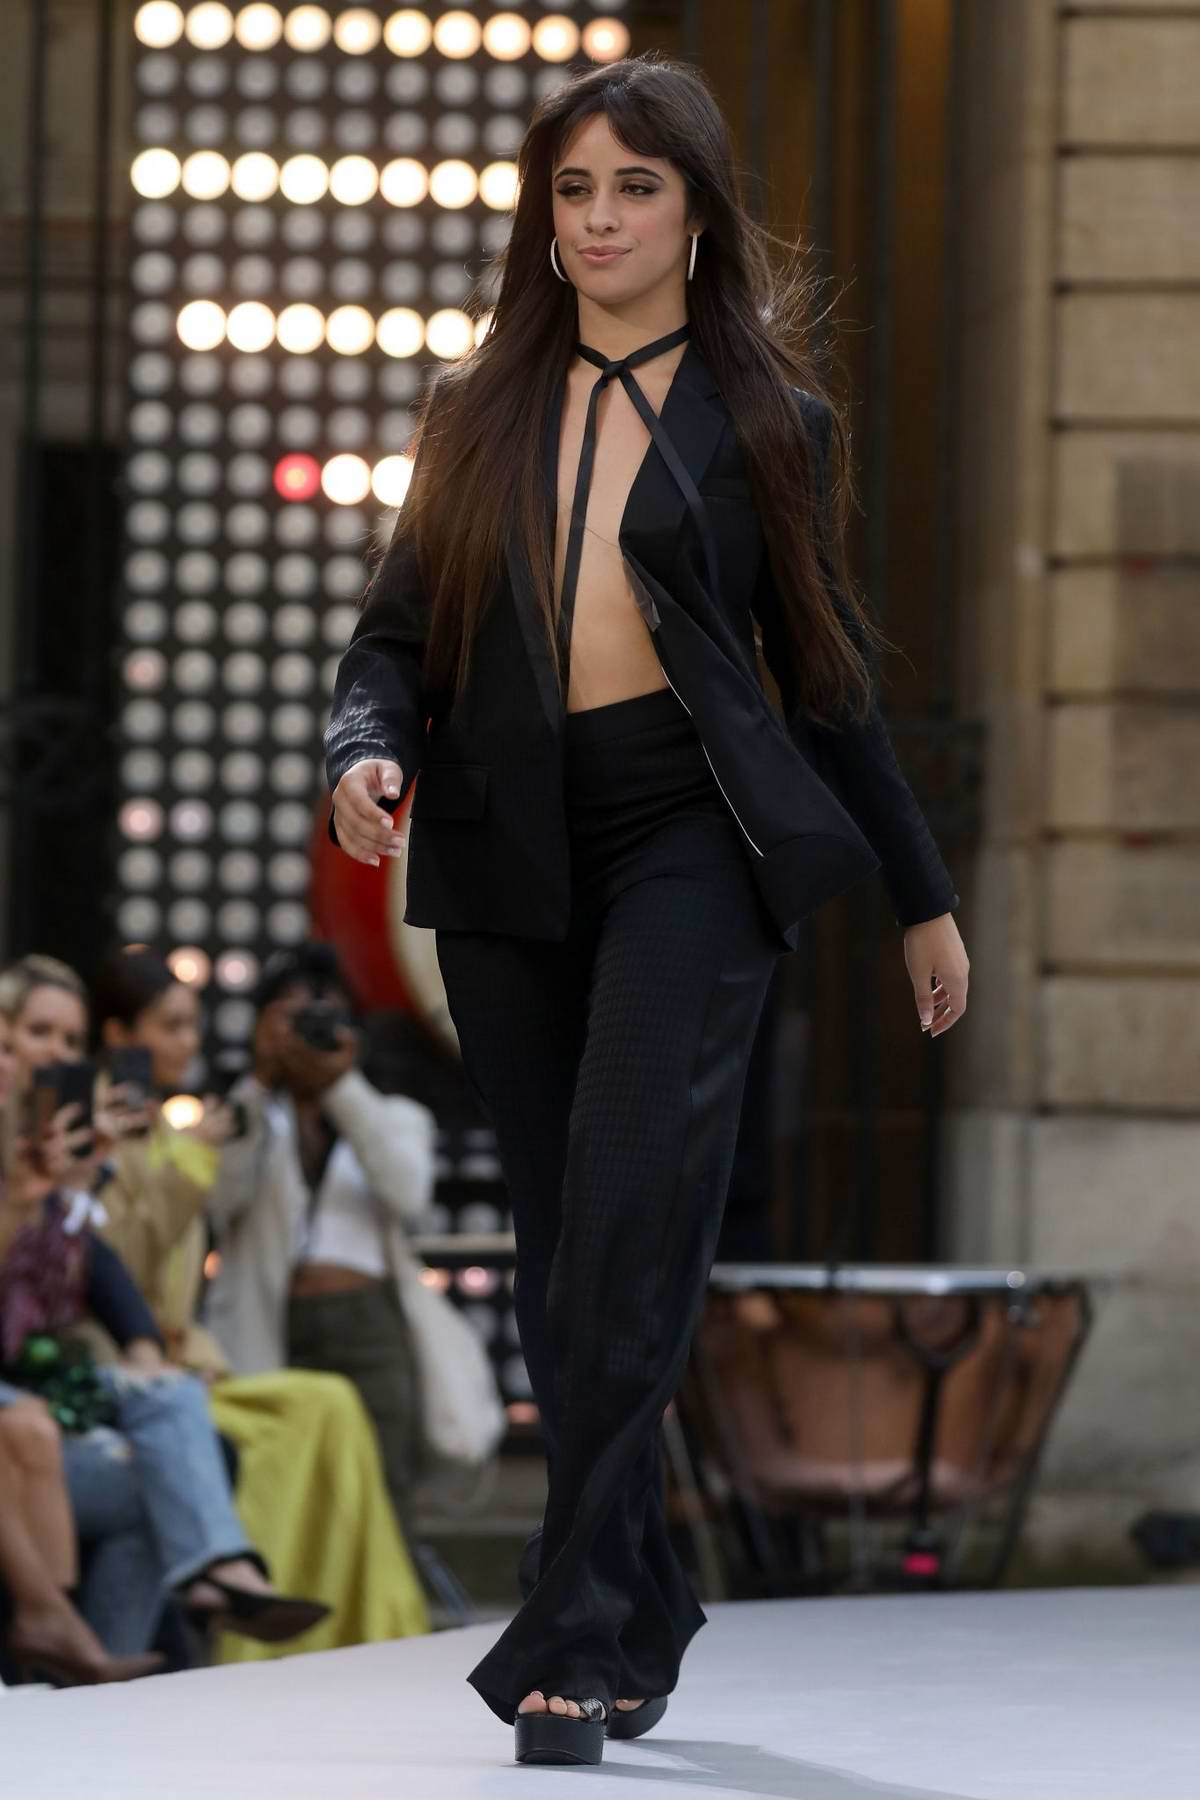 Camila Cabello walks the runway at the Le Defile L'Oreal Paris show during Paris Fashion Week in Paris, France